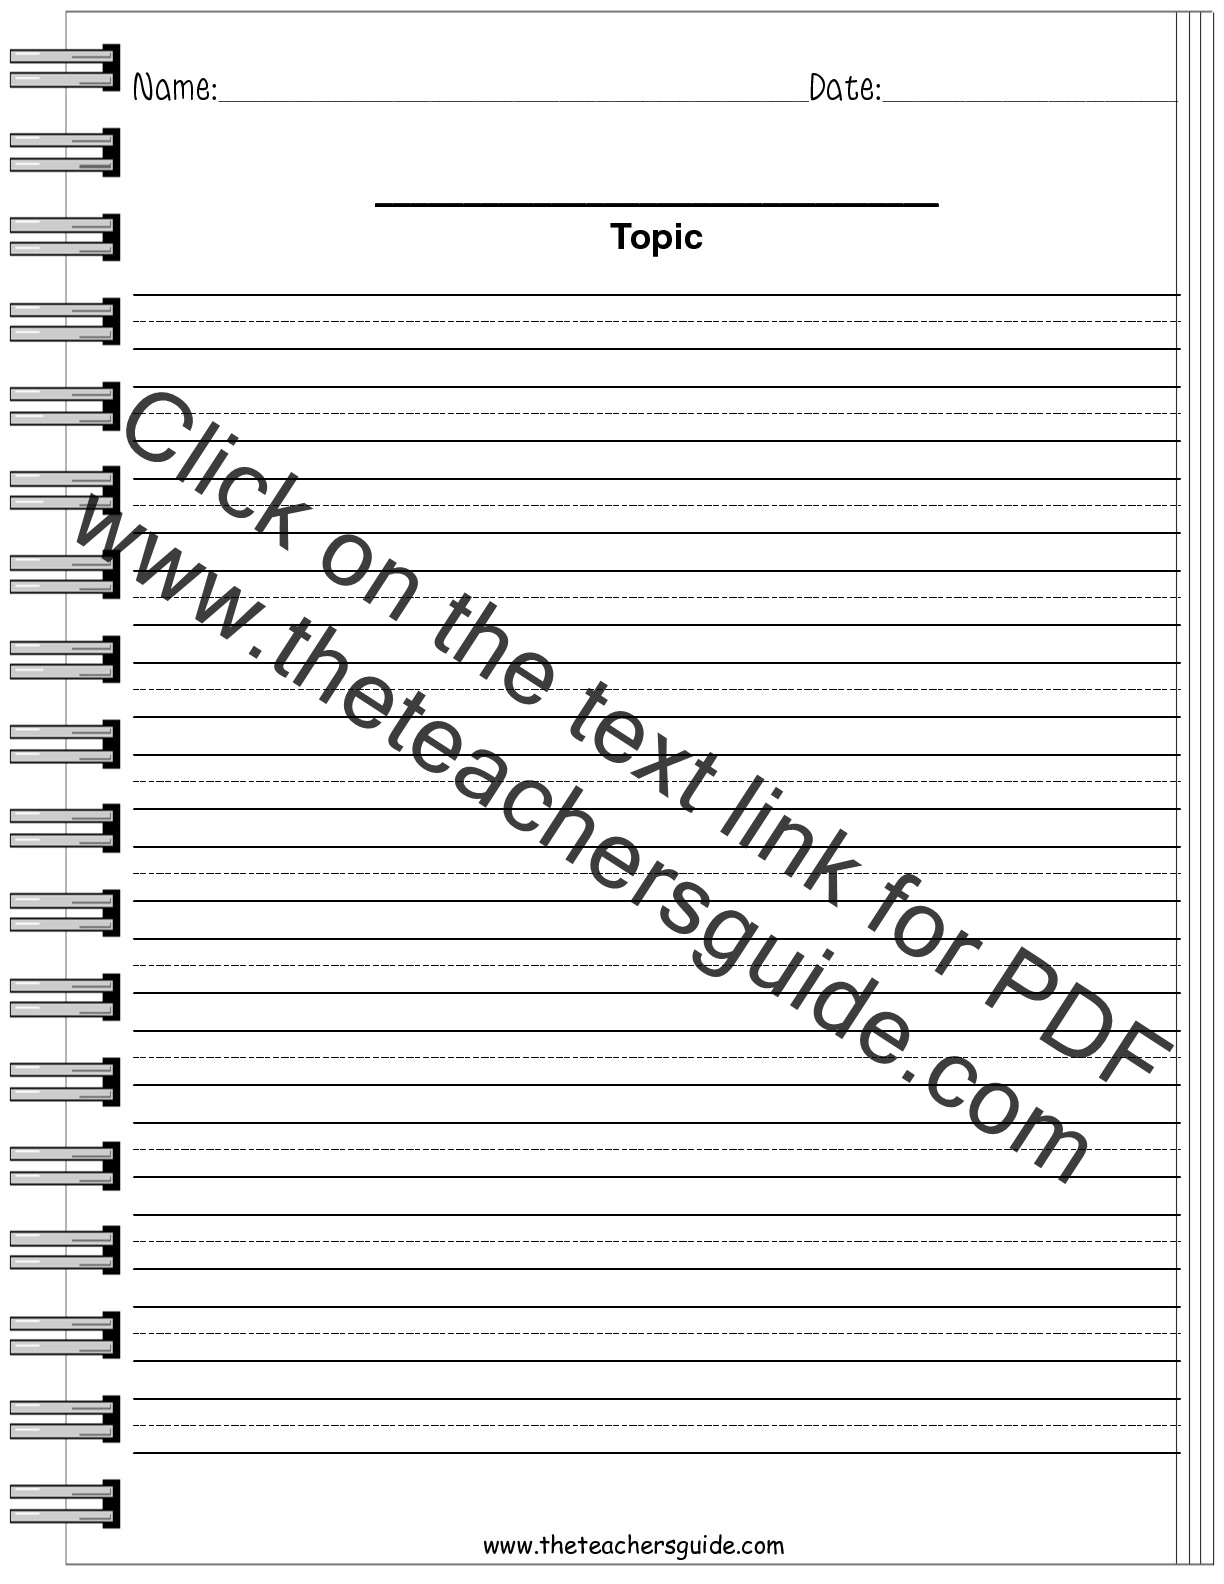 worksheet Writing Prompts Worksheets writing prompt worksheets from the teachers guide topic paper worksheet